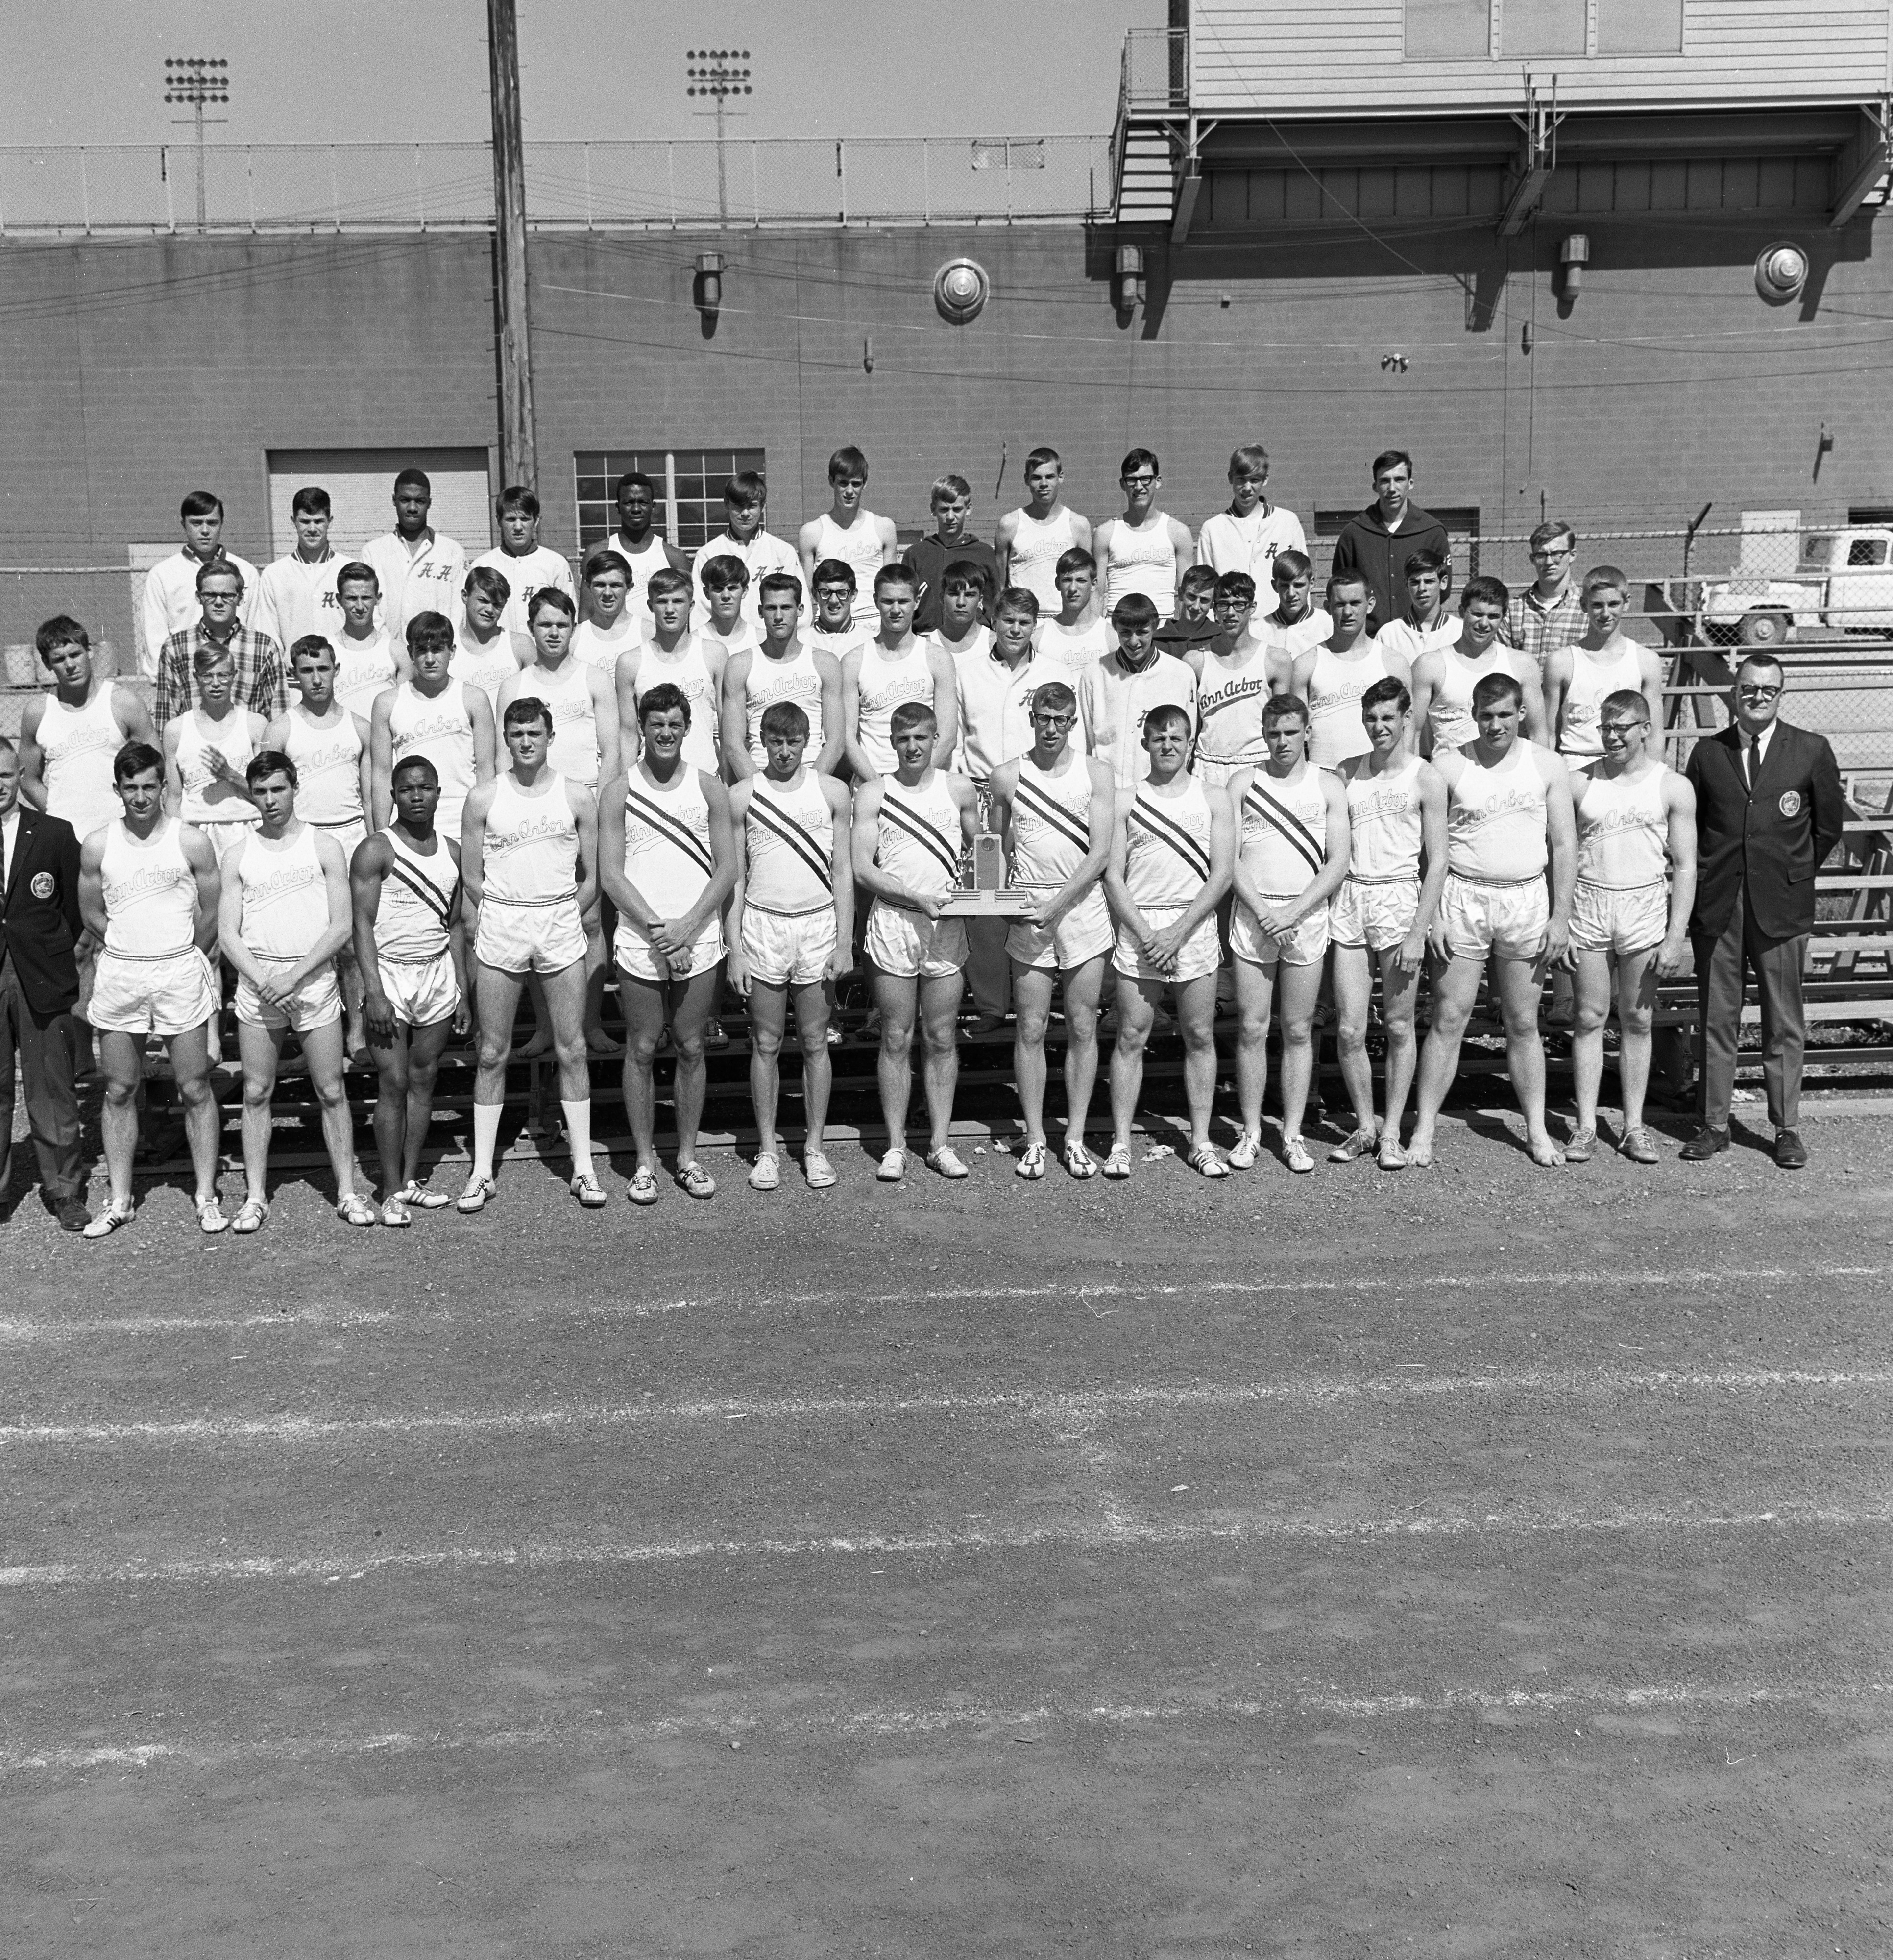 Ann Arbor High School Track Team Six-A League Champions, May 1966 image